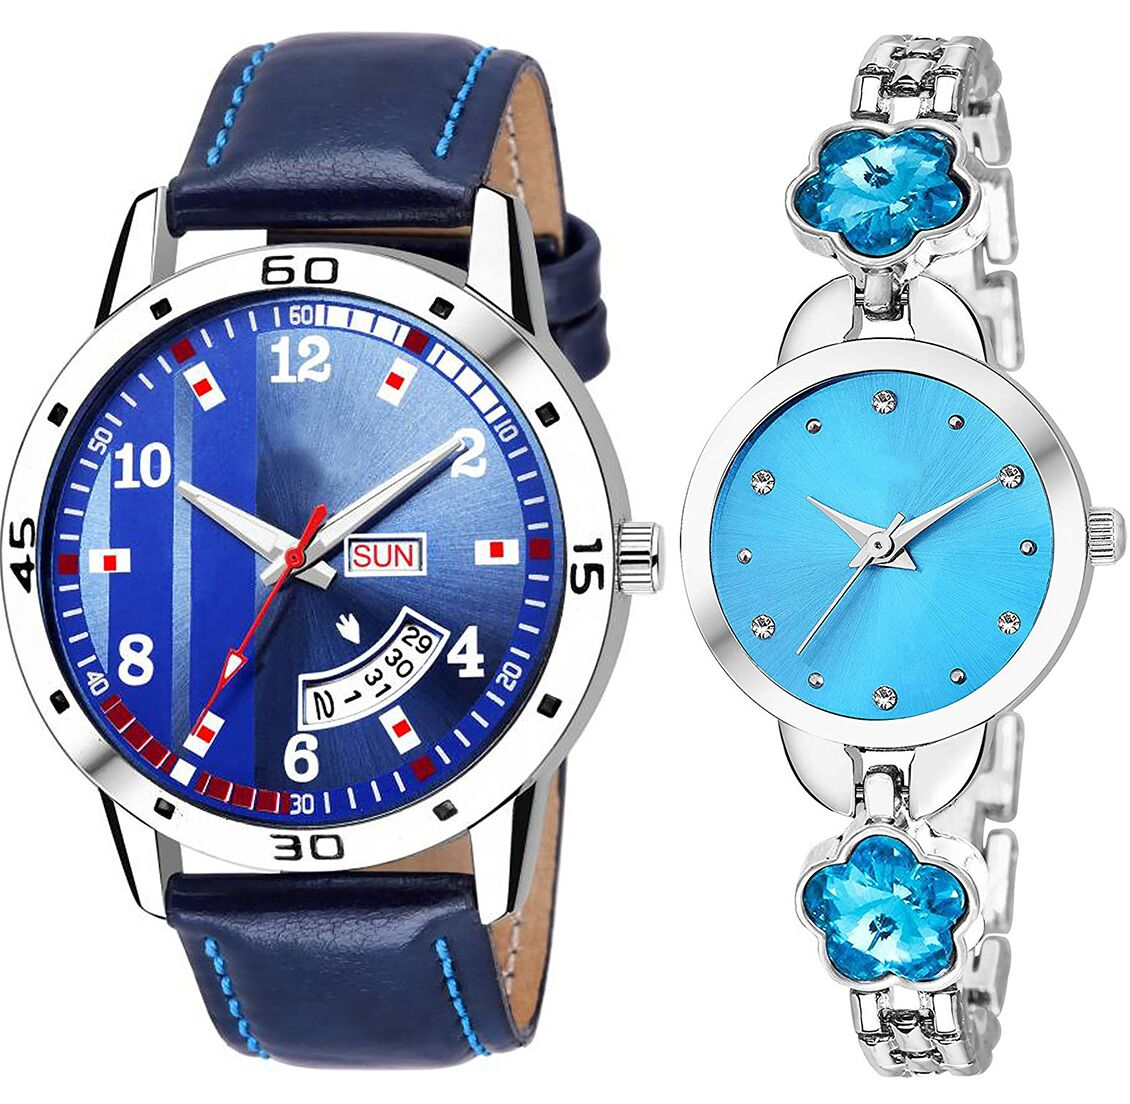 SENJARYA TIMES Blue Dial Day And Date New Stylish Couple Watch For Men And Women DR110